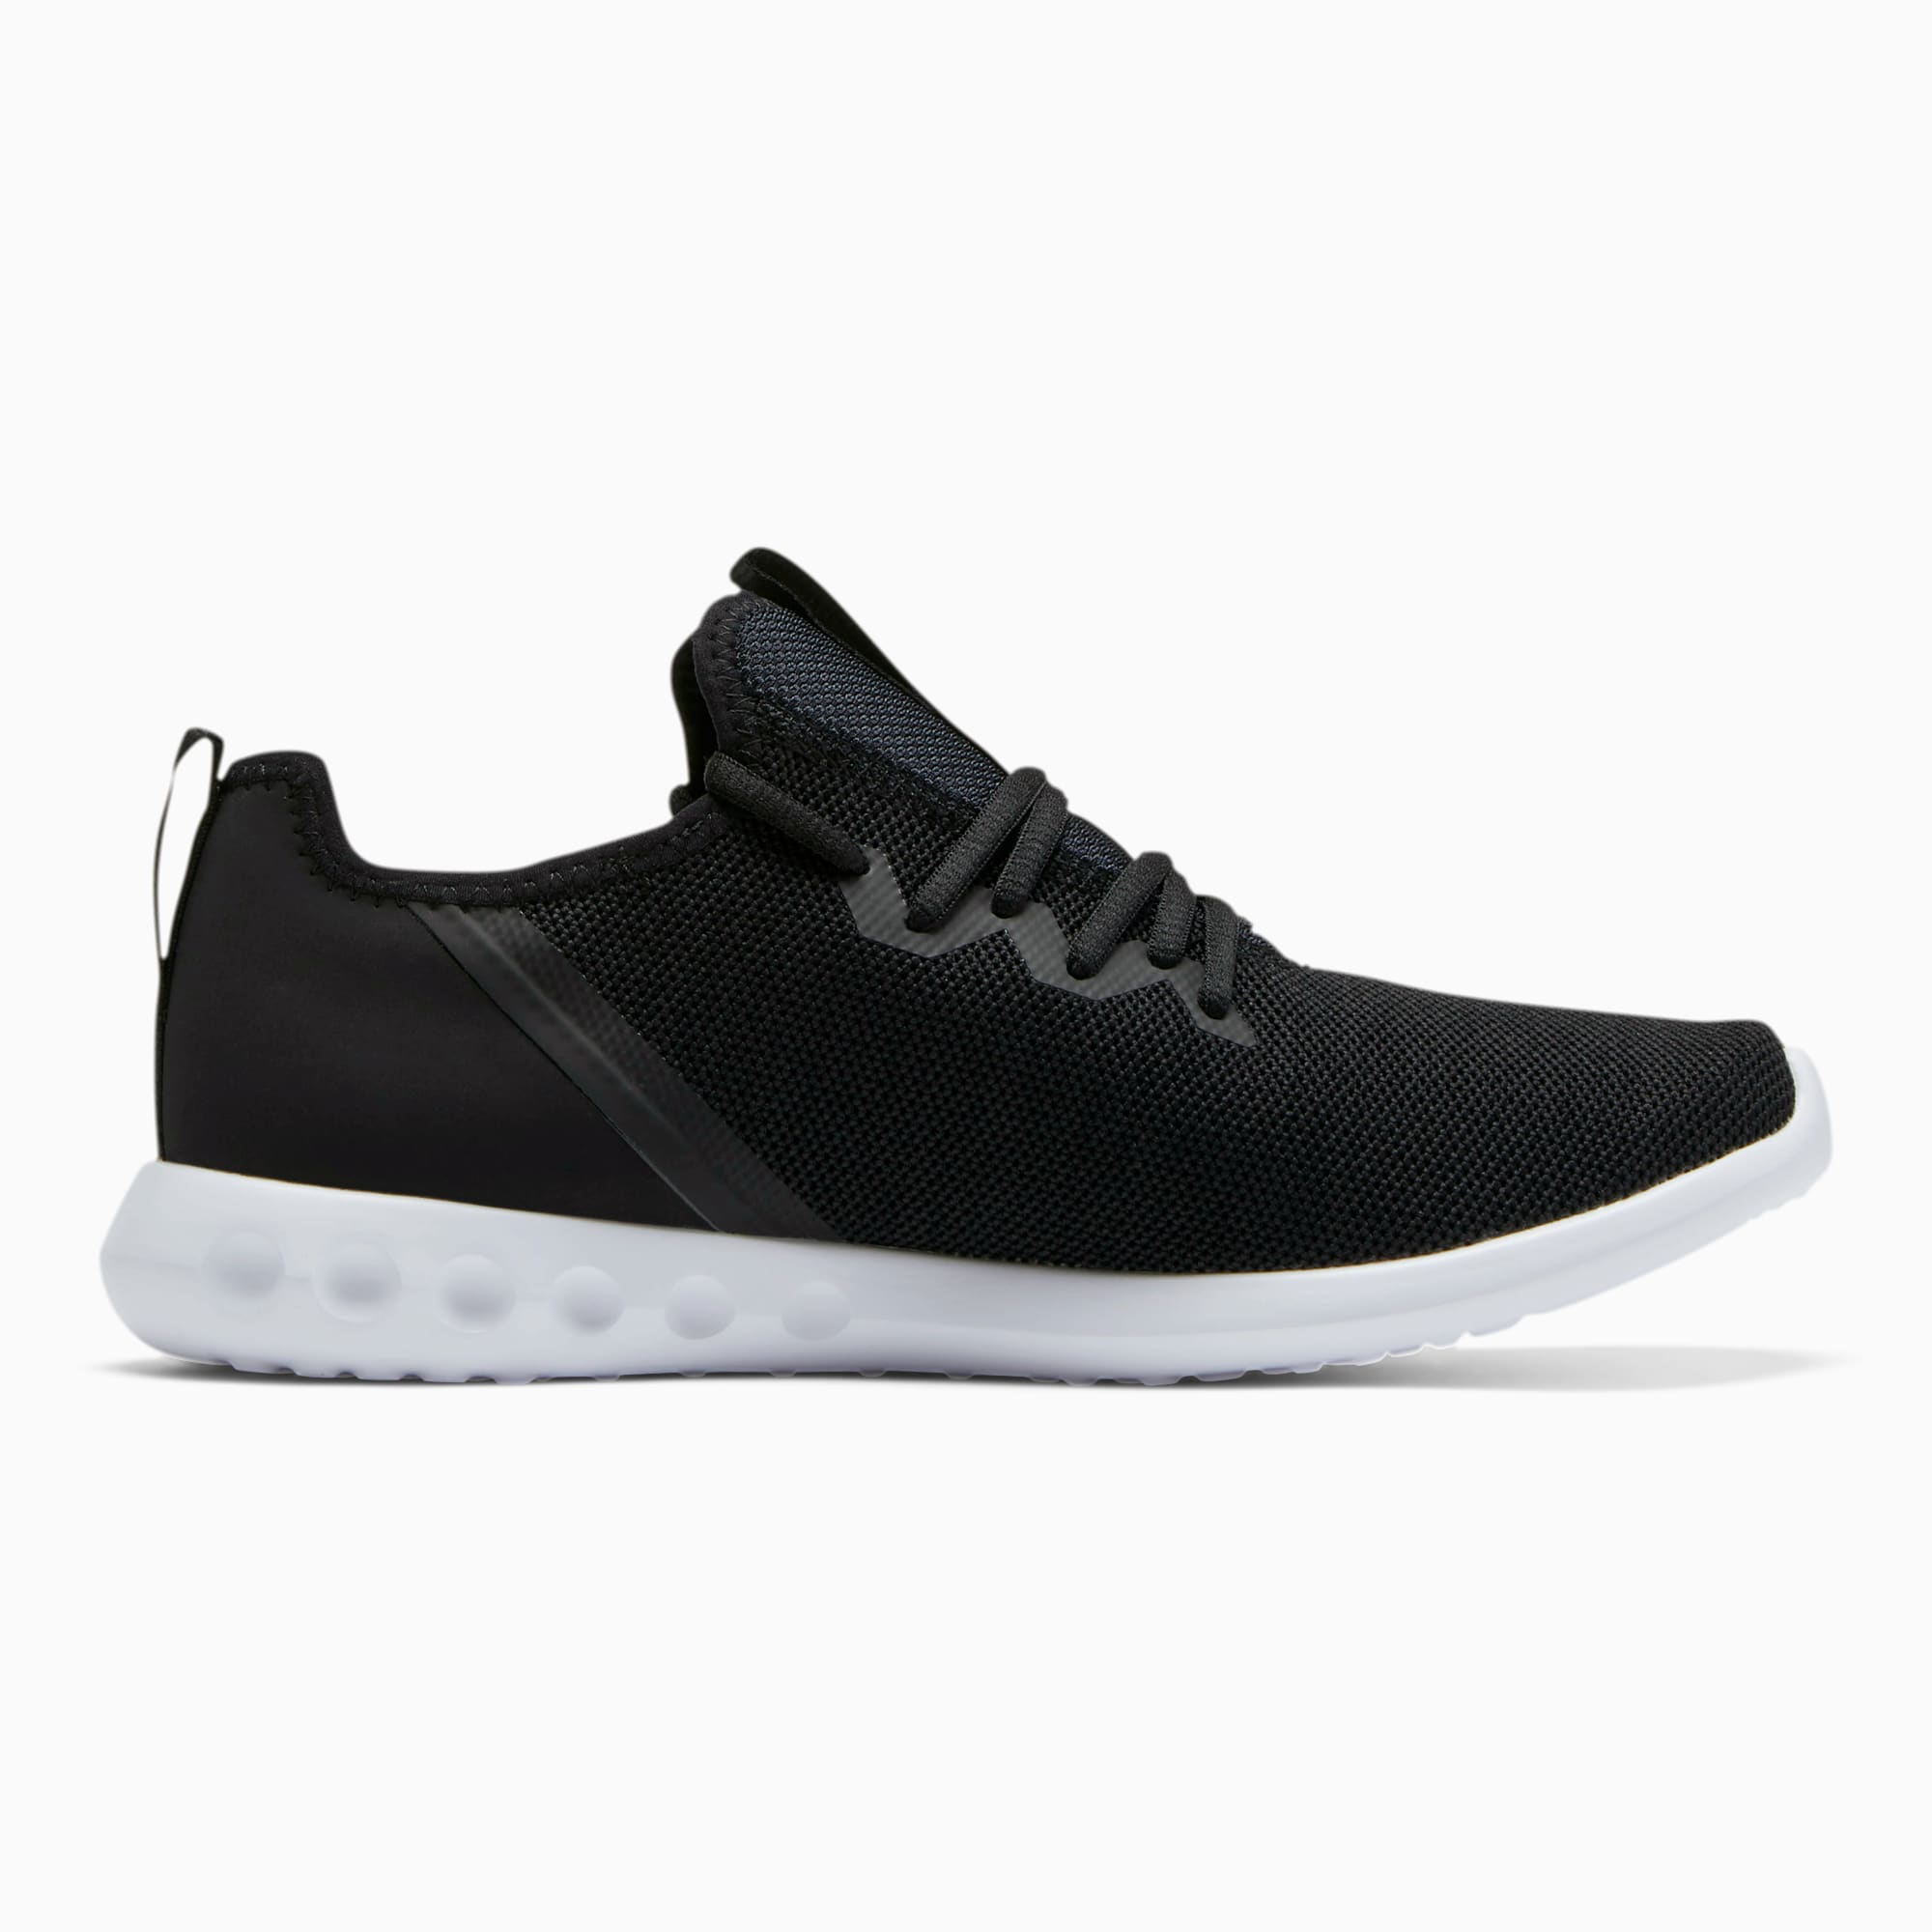 Carson 2 X Knit Men's Running Shoes